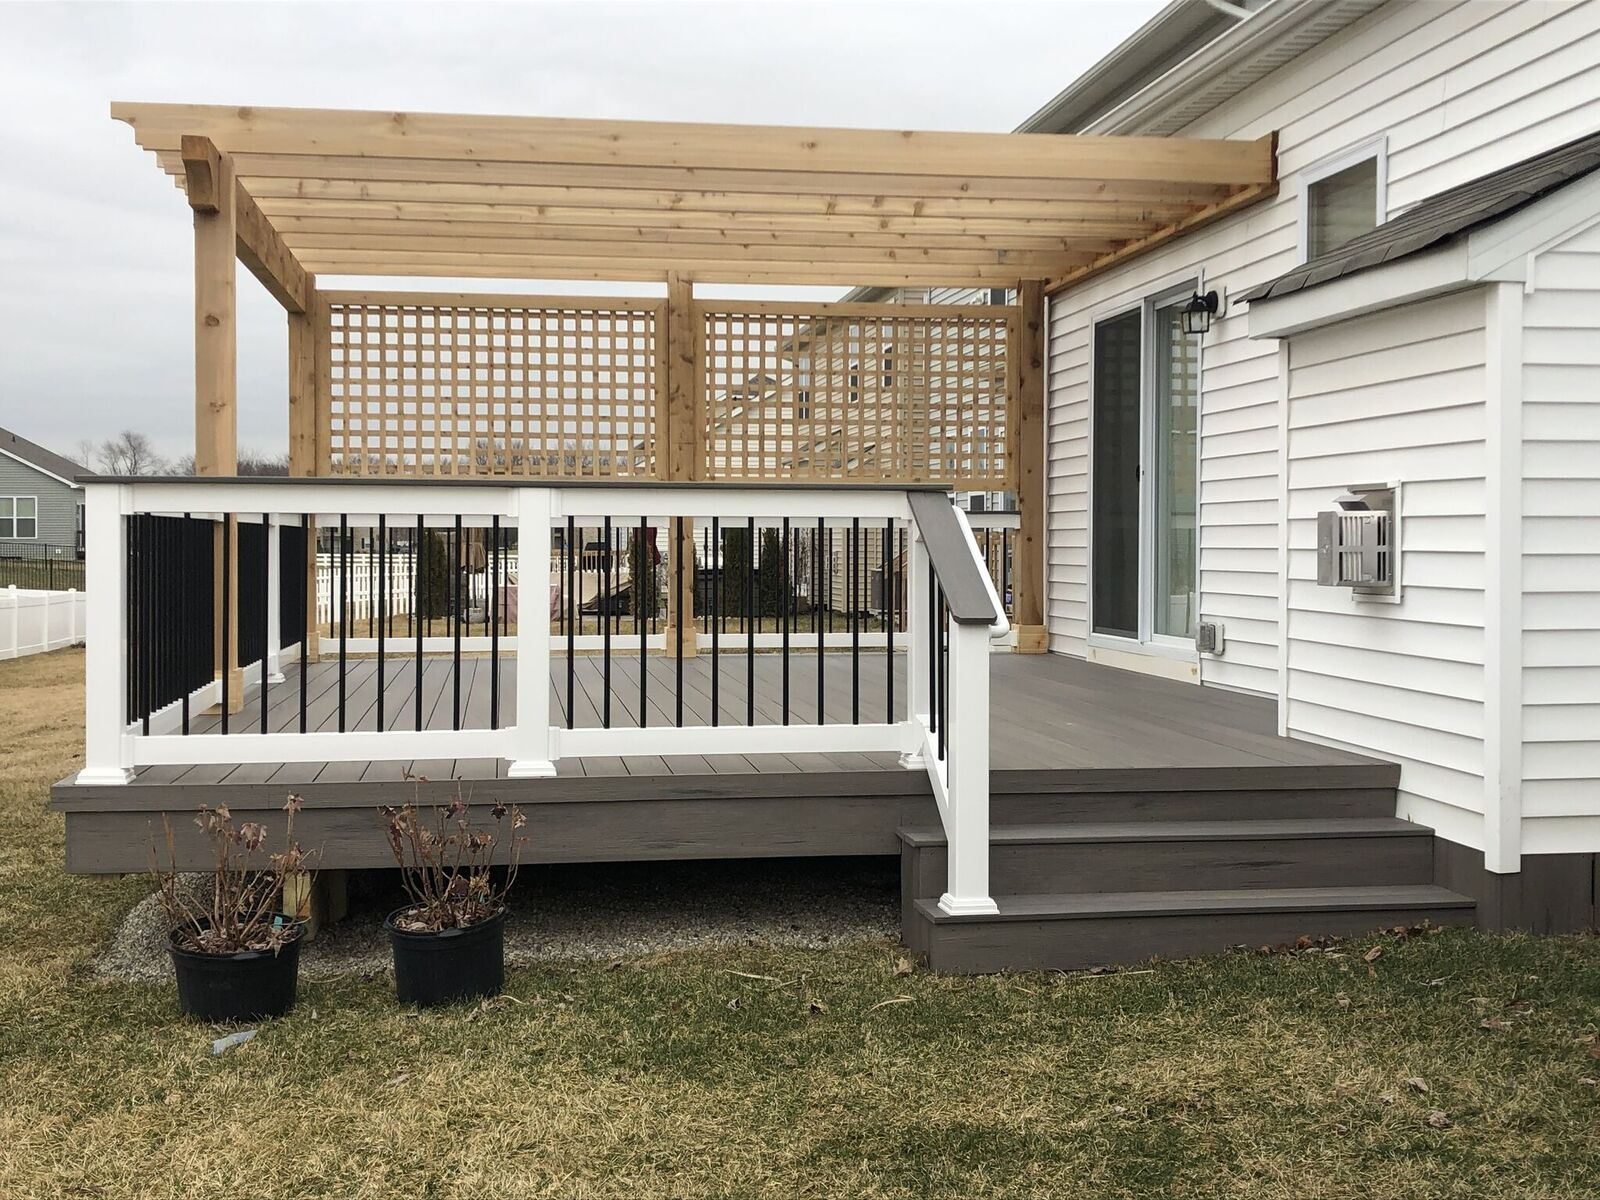 Don't-forget-the-custom-pergola-with-a-privacy-screen